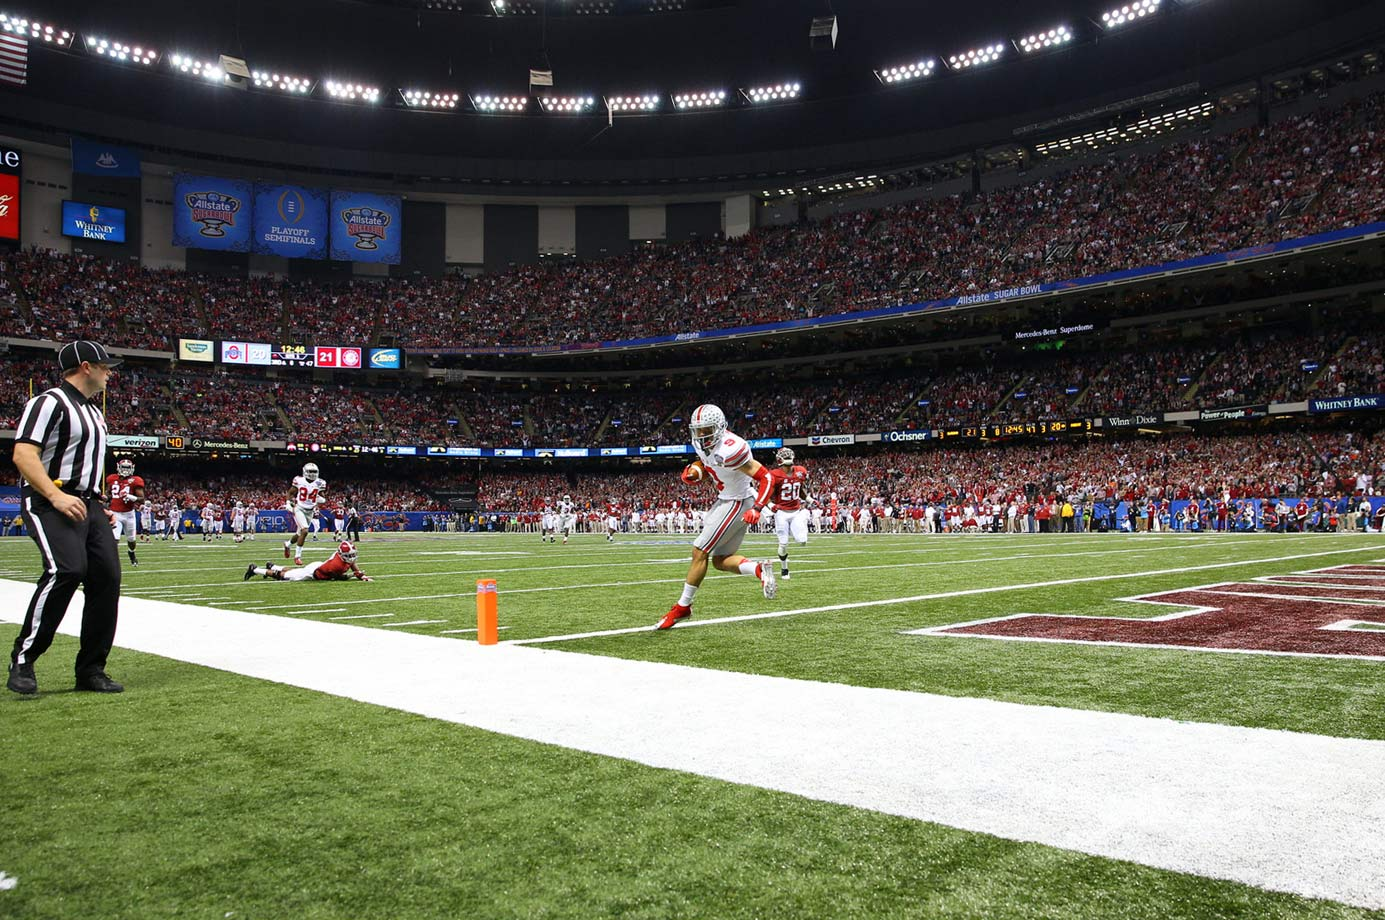 Devin Smith scores a 47-yard touchdown reception that put the Buckeyes ahead for good early in the third quarter.